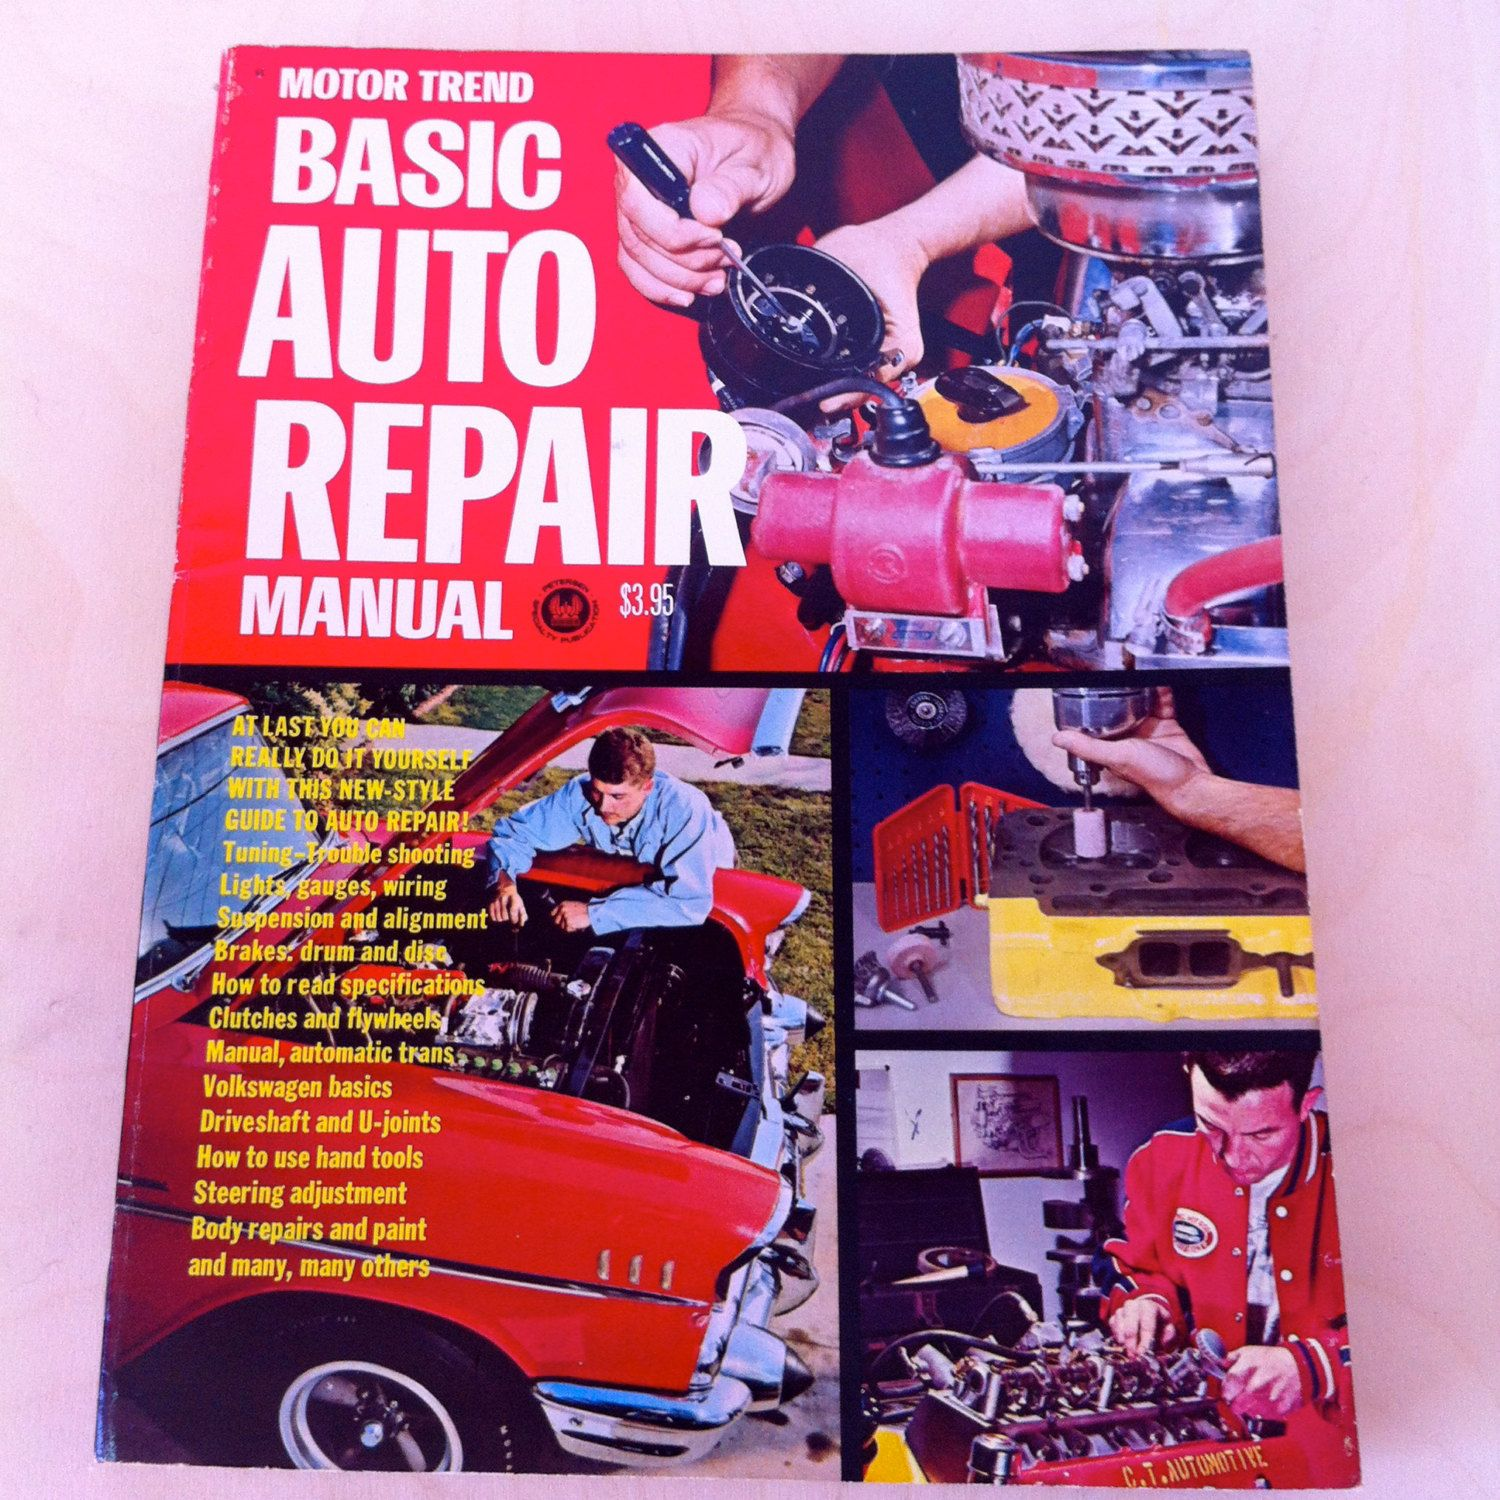 Motor Trend Basic Auto Repair Manual 1968 Petersen Publishing Automotive Wiring Books Vintage Book Car Trouble Shooting Tune Up By Vintagebaron On Etsy